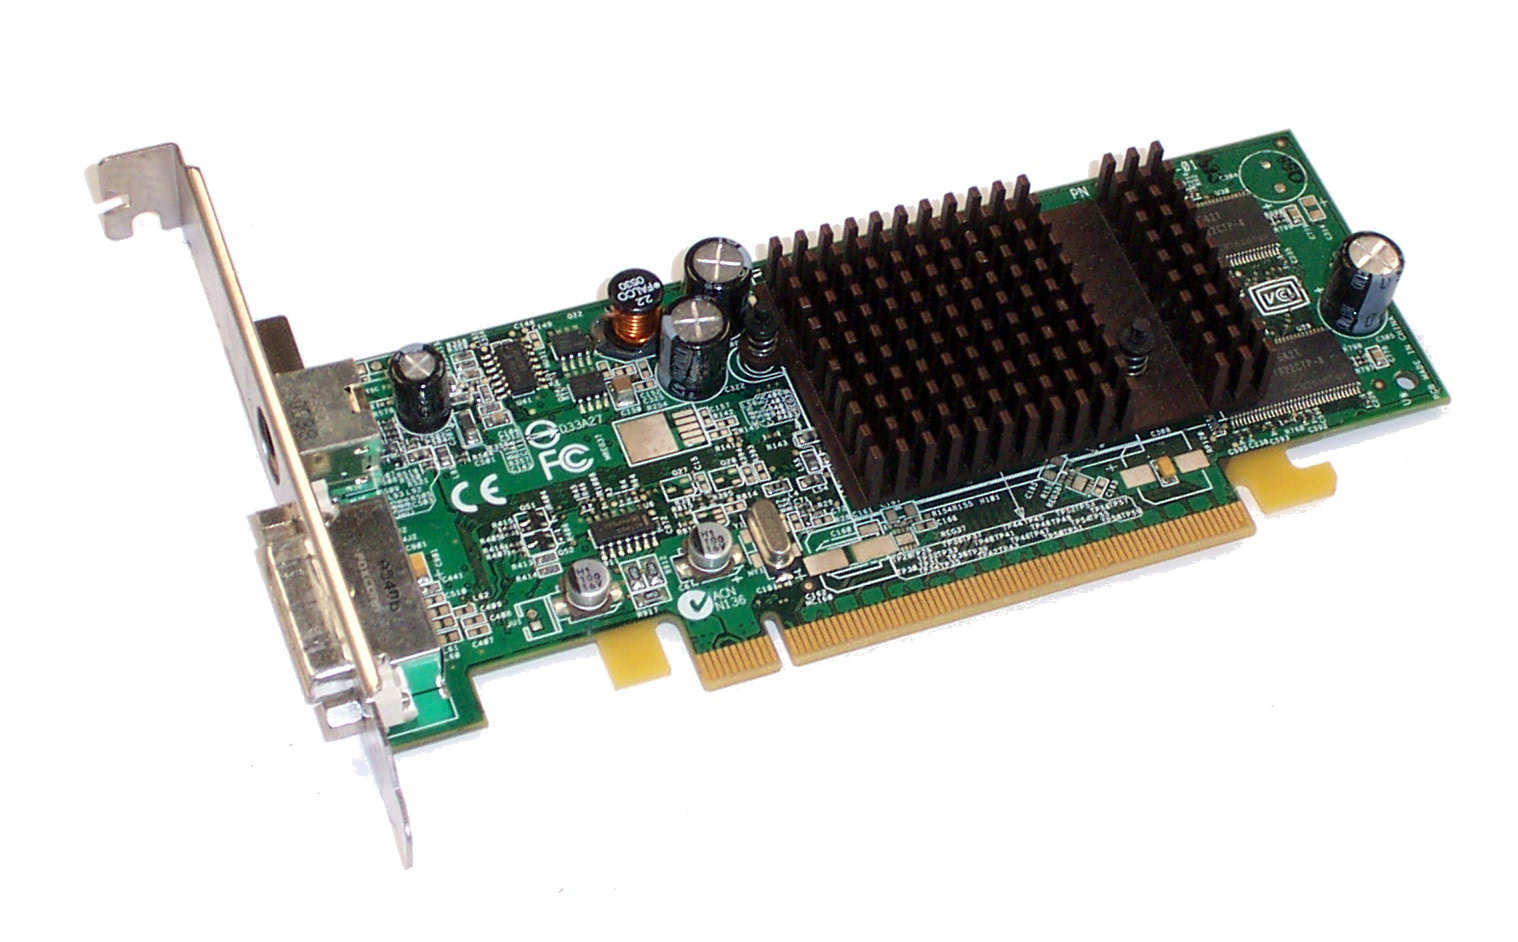 Pcie x16 slot graphics cards